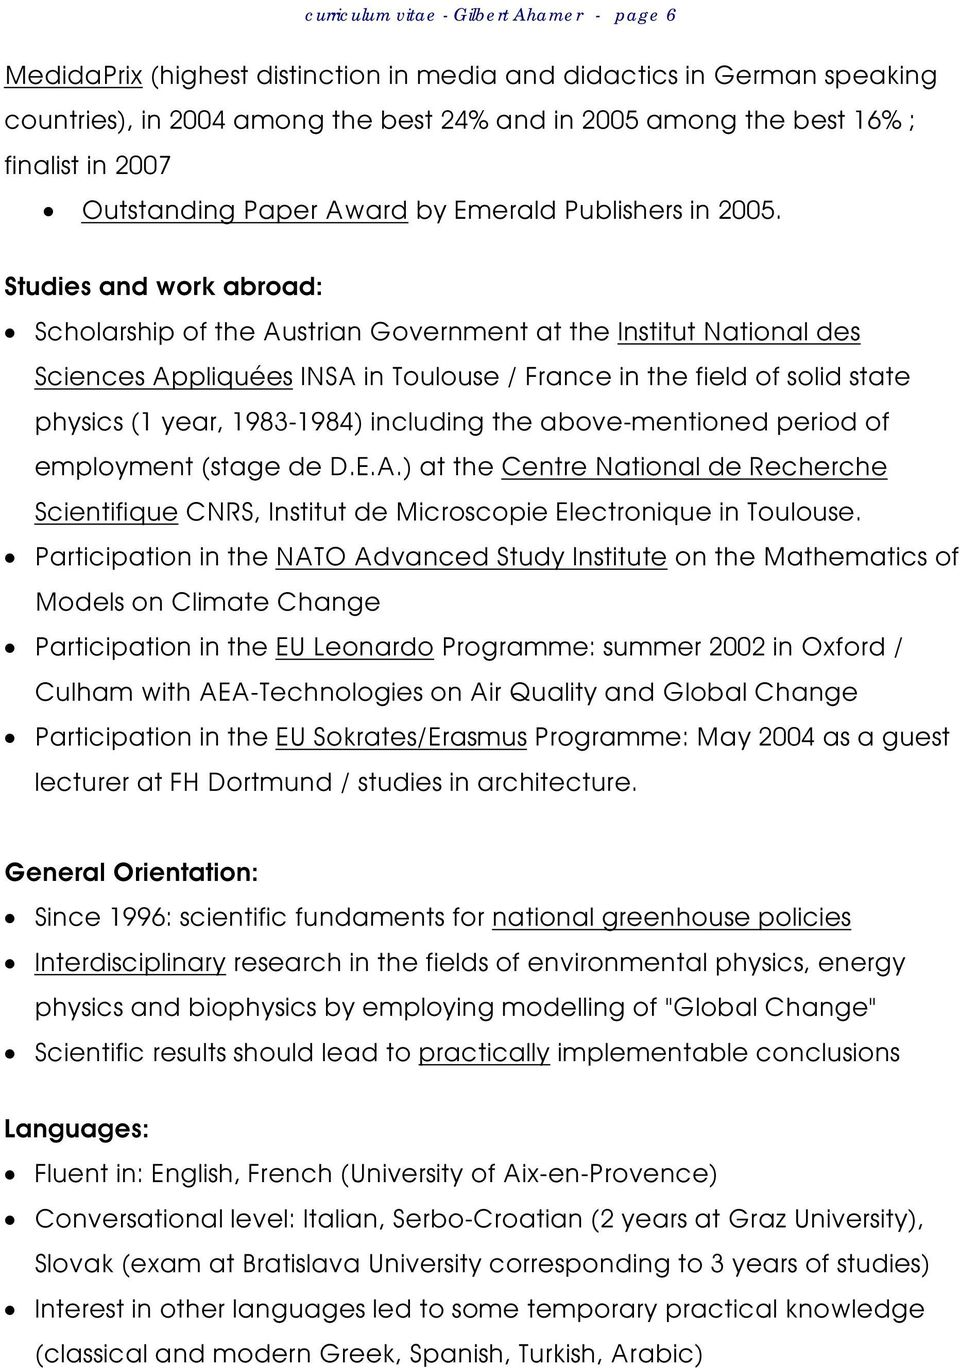 Studies and work abroad: Scholarship of the Austrian Government at the Institut National des Sciences Appliquées INSA in Toulouse / France in the field of solid state physics (1 year, 1983-1984)